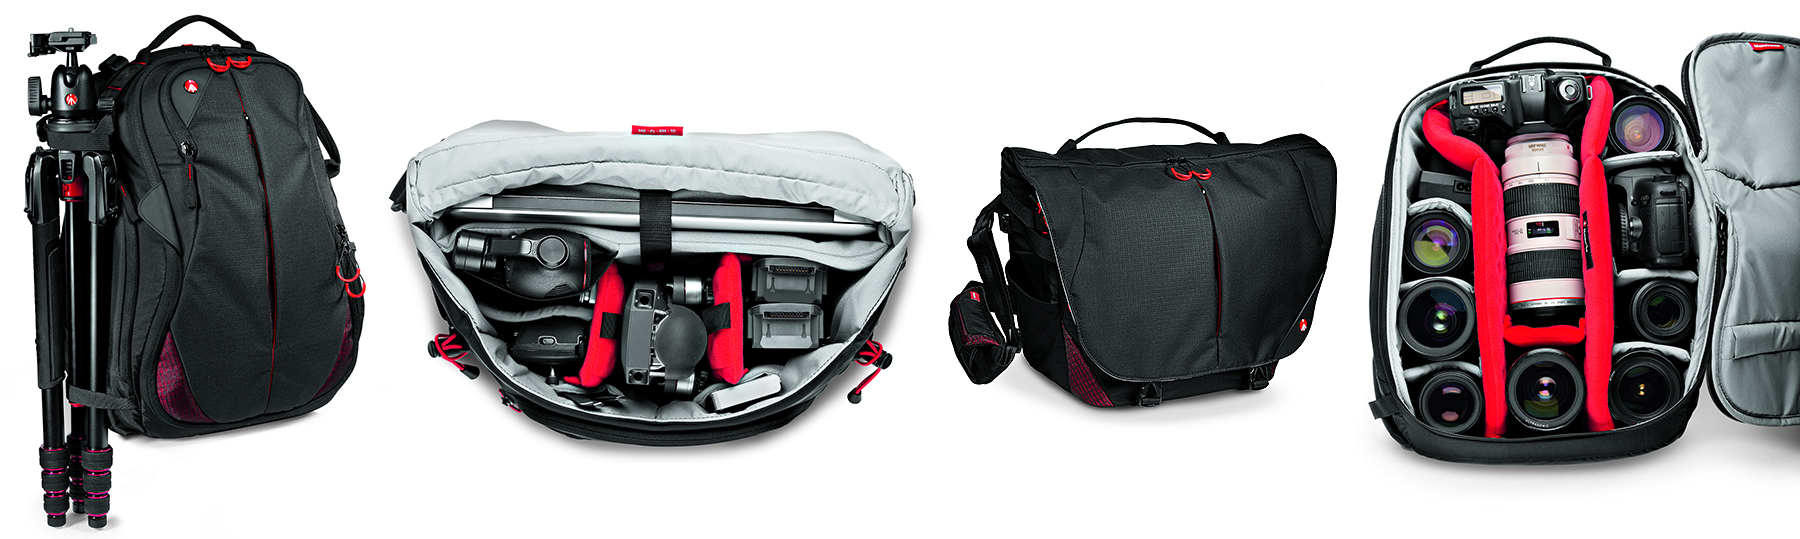 Manfrotto Bags Featured